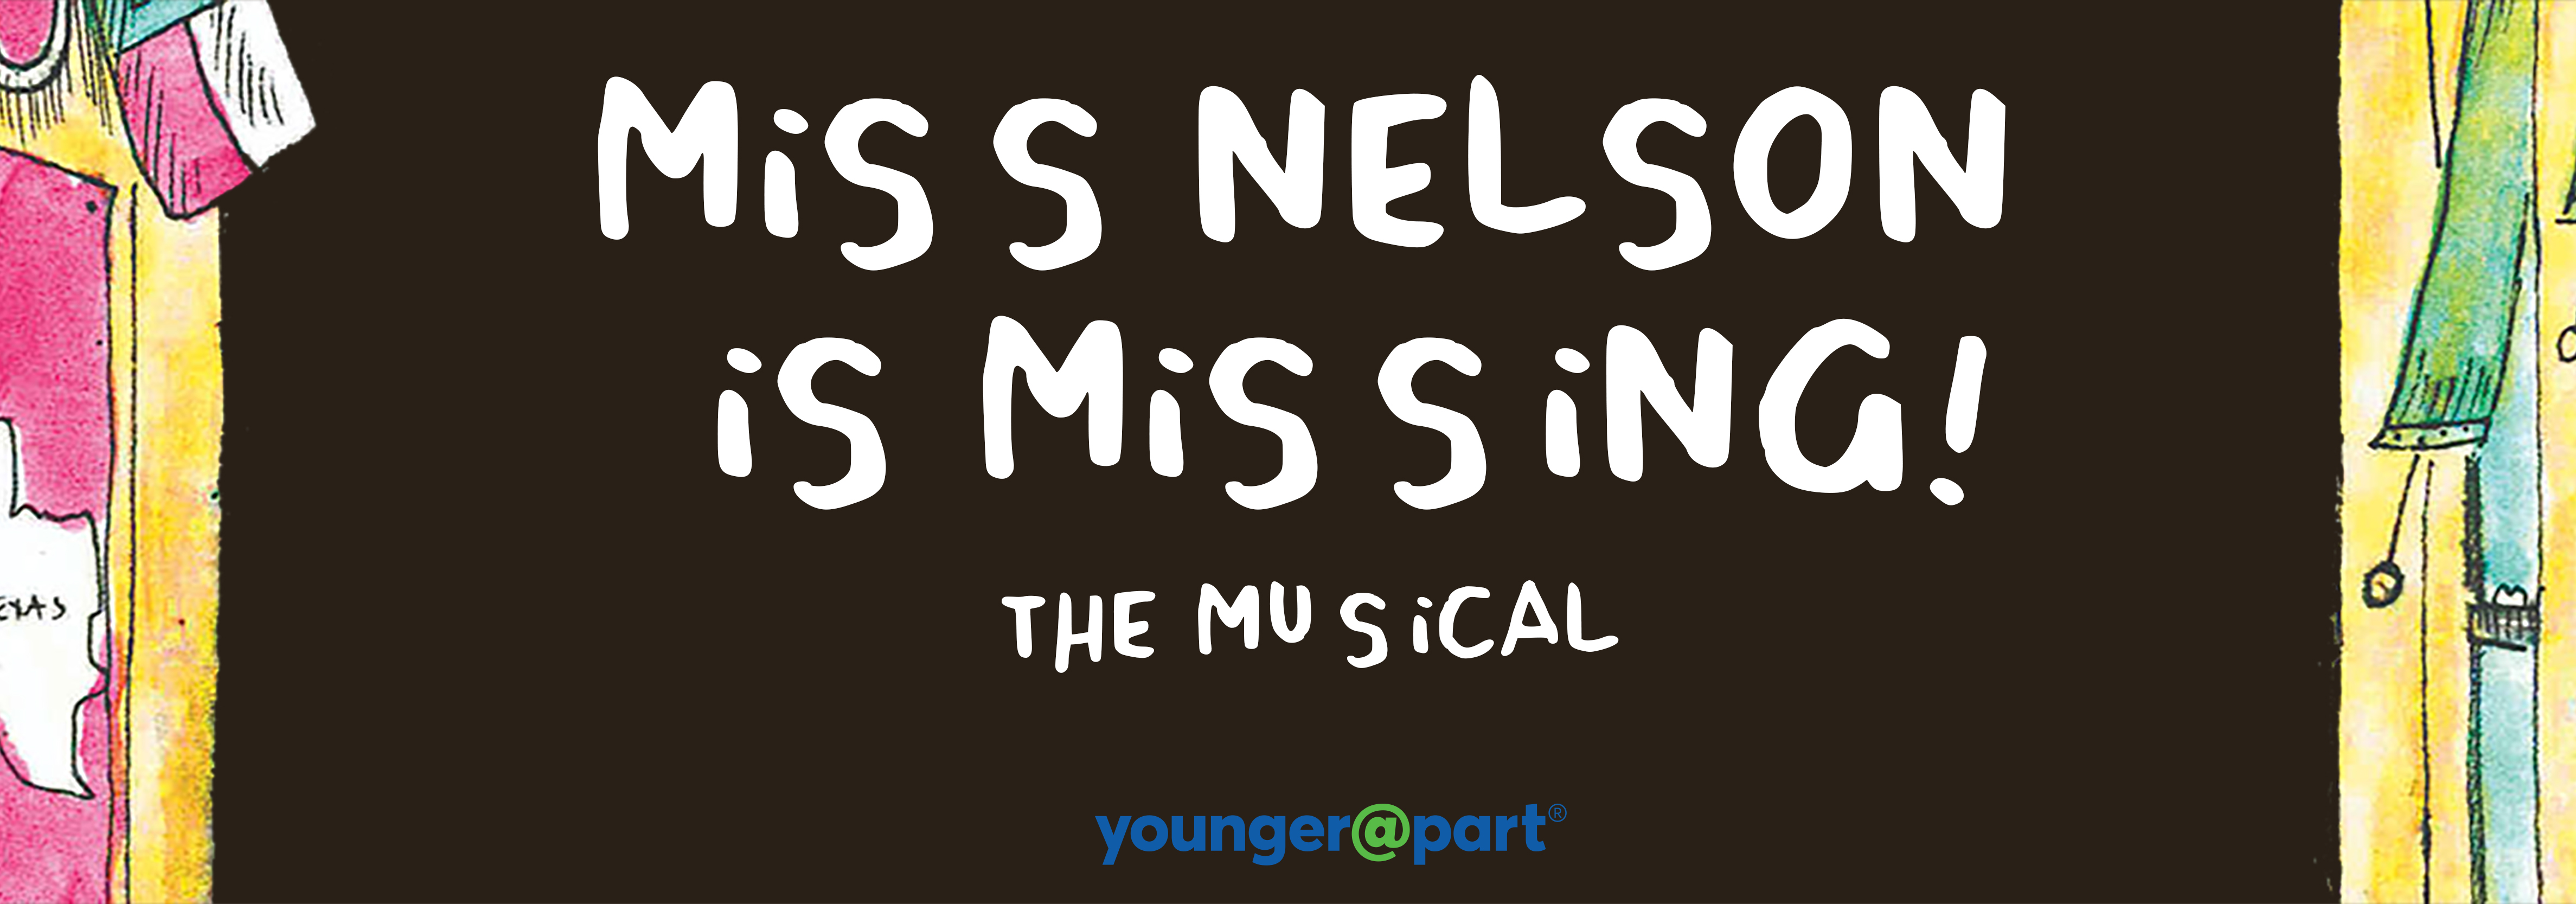 Miss Nelson Is Missing the Musical banner logo